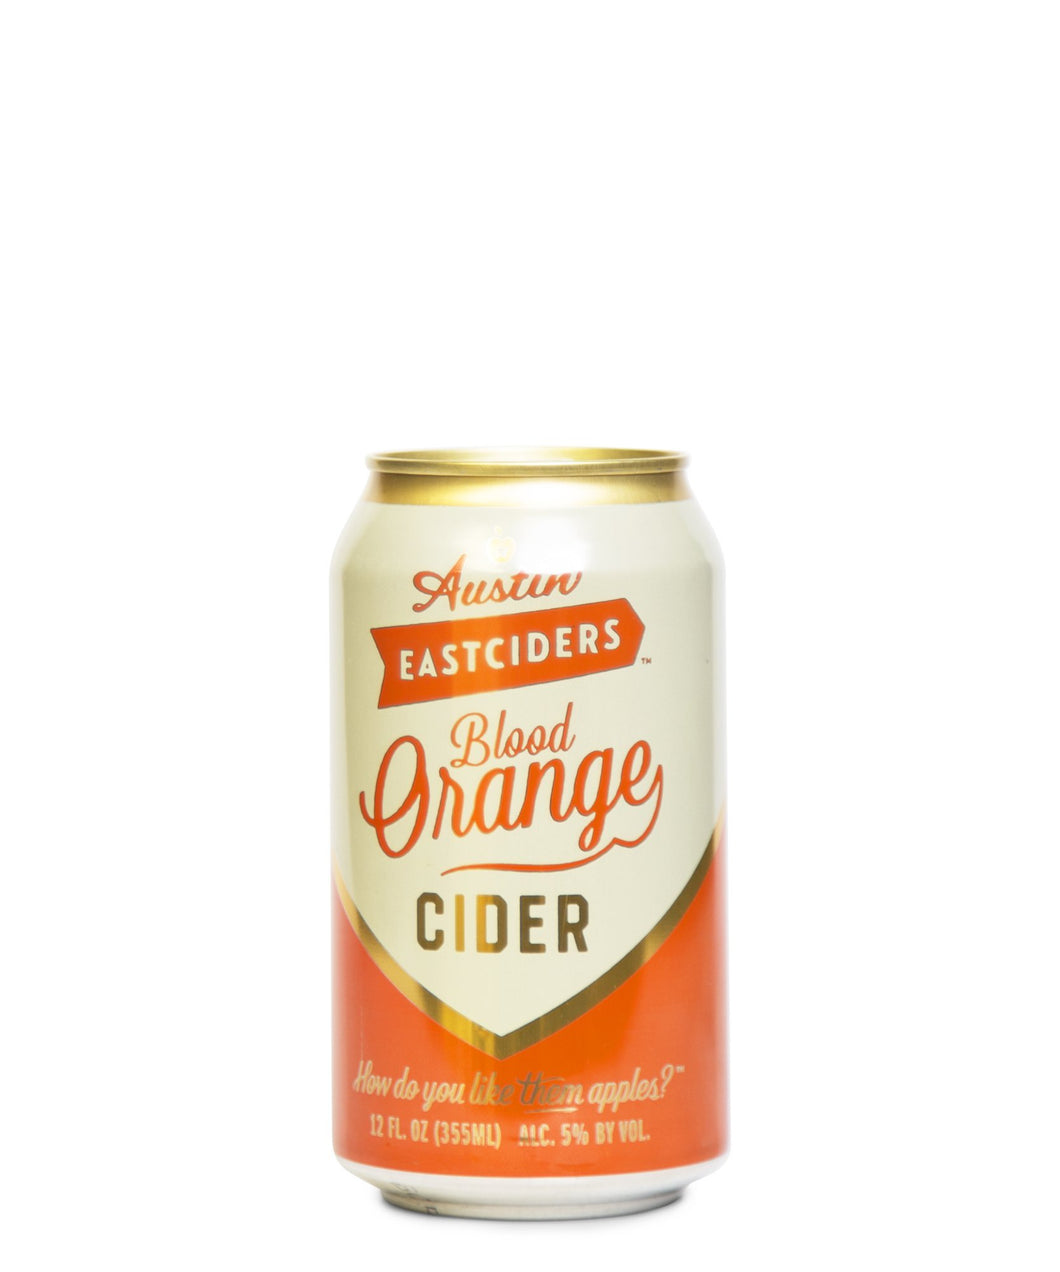 Blood Orange Cider